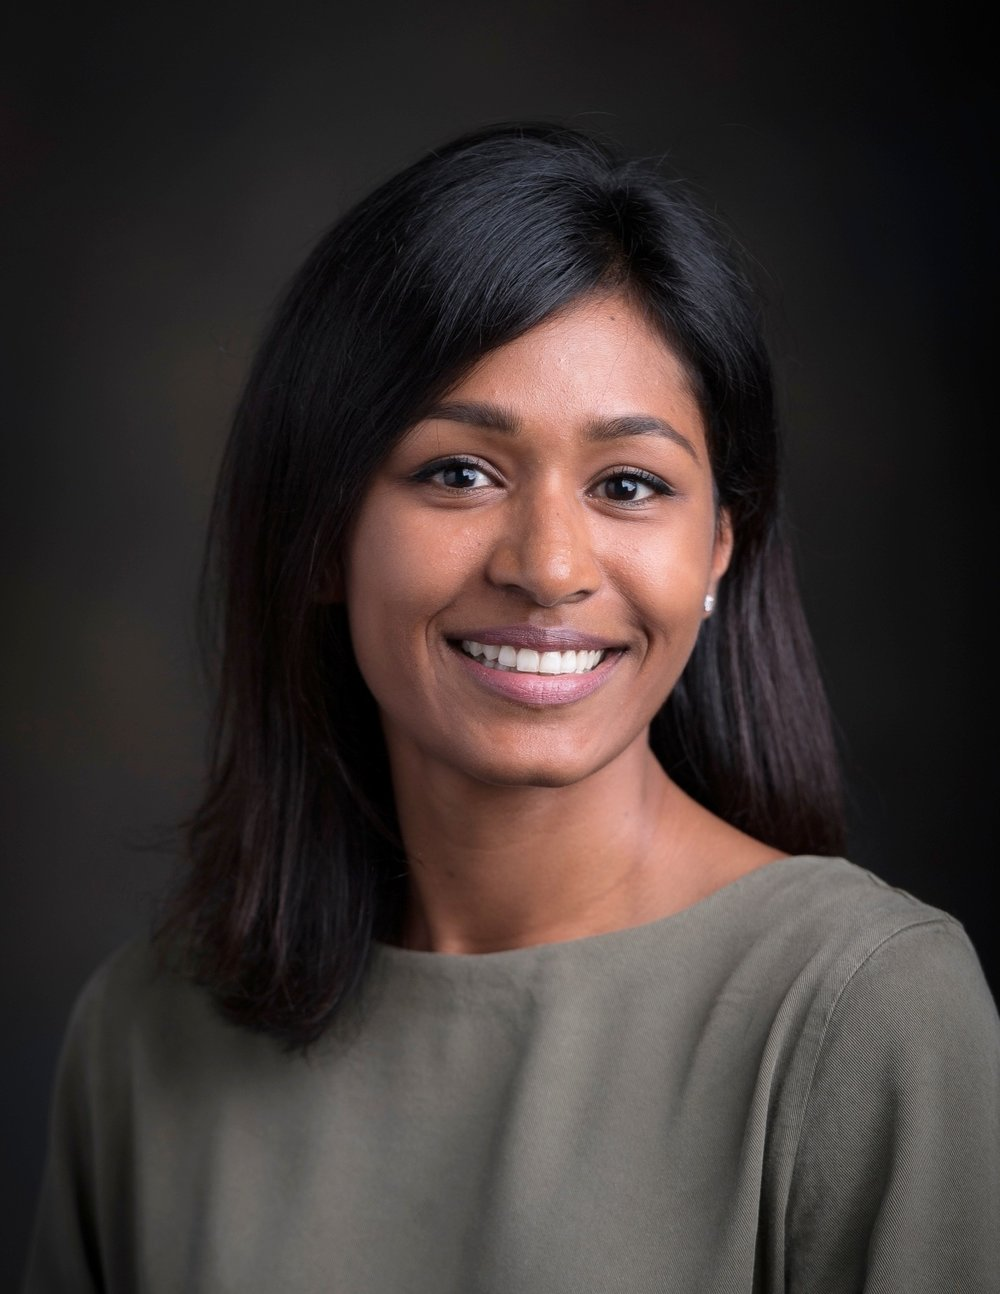 Dr. Yuthika Girme - Dr. Yuthika Girme is the Lab Director for the Supporting REWE Lab at Simon Fraser University. Dr. Girme completed her PhD at the University of Auckland in 2015. She completed her post-doctorate at Purdue University before joining SFU in 2016. Her primary research goals involve identifying the ways people can effectively provide support and generate closeness in their romantic relationships. Her research focuses on how contextual factors and partners' relationship insecurities can help explain when providing support can be beneficial or costly. Dr. Girme also conducts research on understanding factors that can help maximize single peoples' wellbeing.see GoogleScholar | ResearchGate | SFU Faculty Page